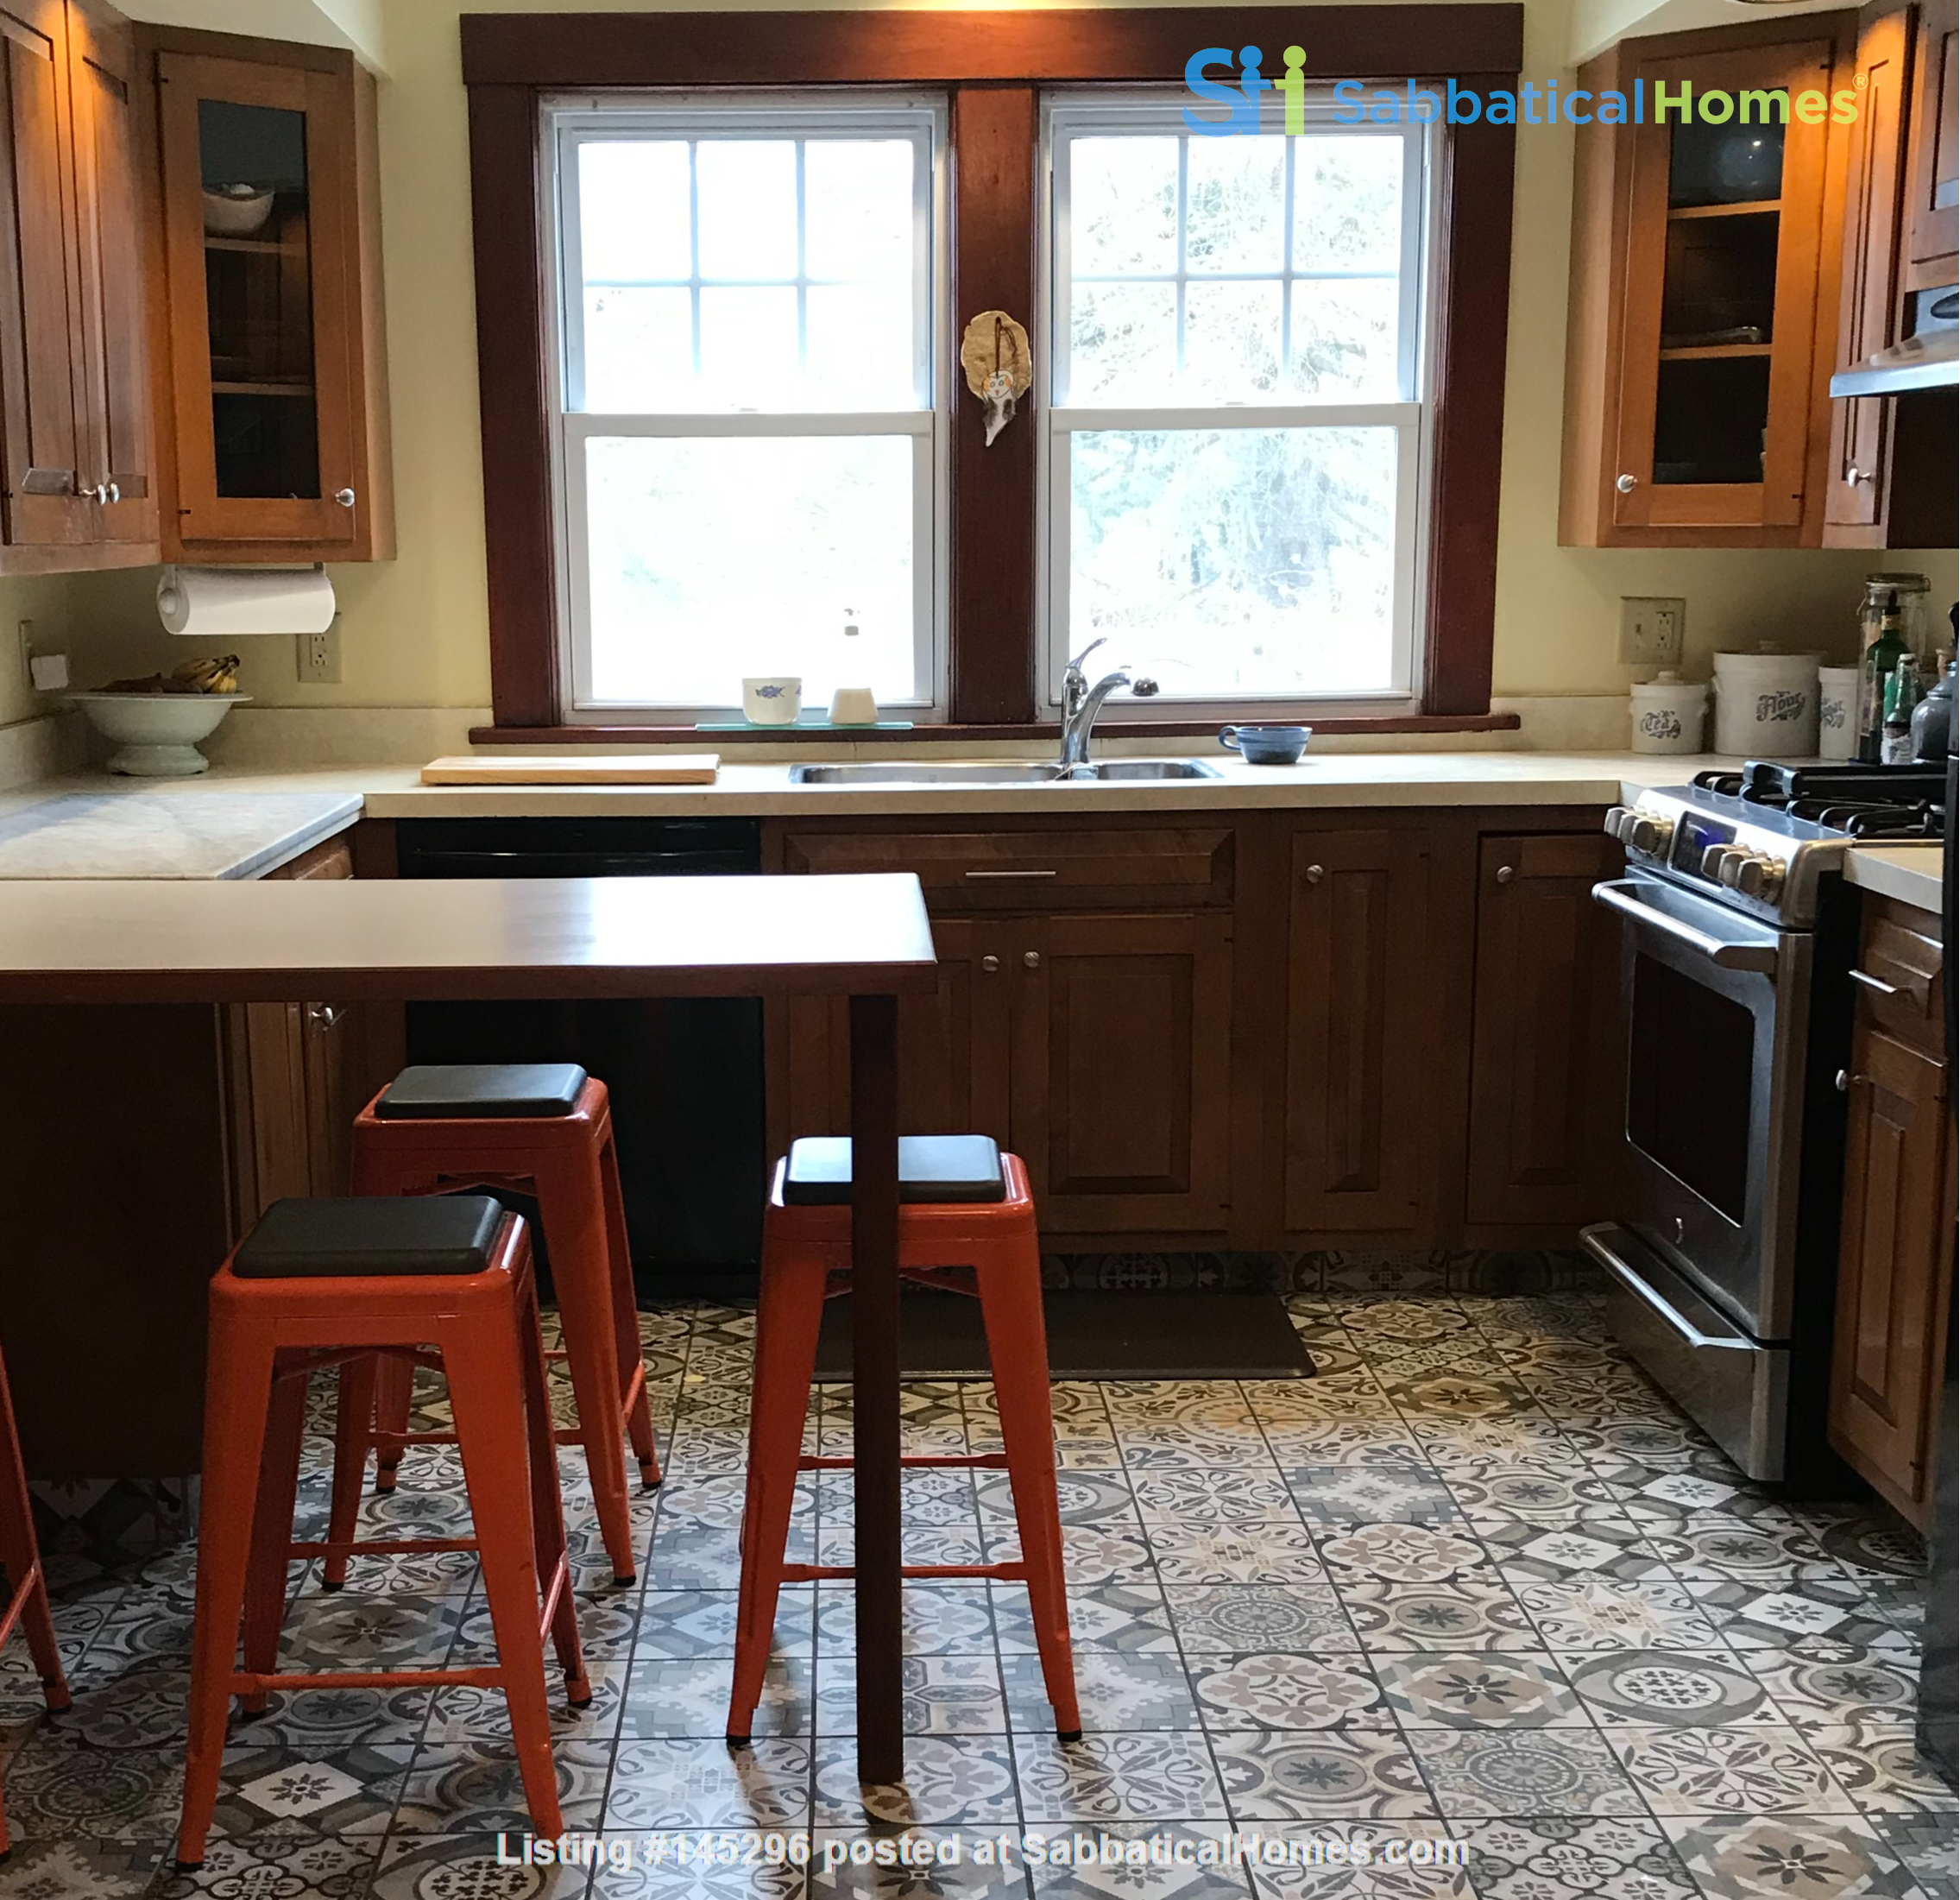 Charming 4 bedroom home in Williamstown - walk to campus and downtown Home Rental in Williamstown, Massachusetts, United States 2